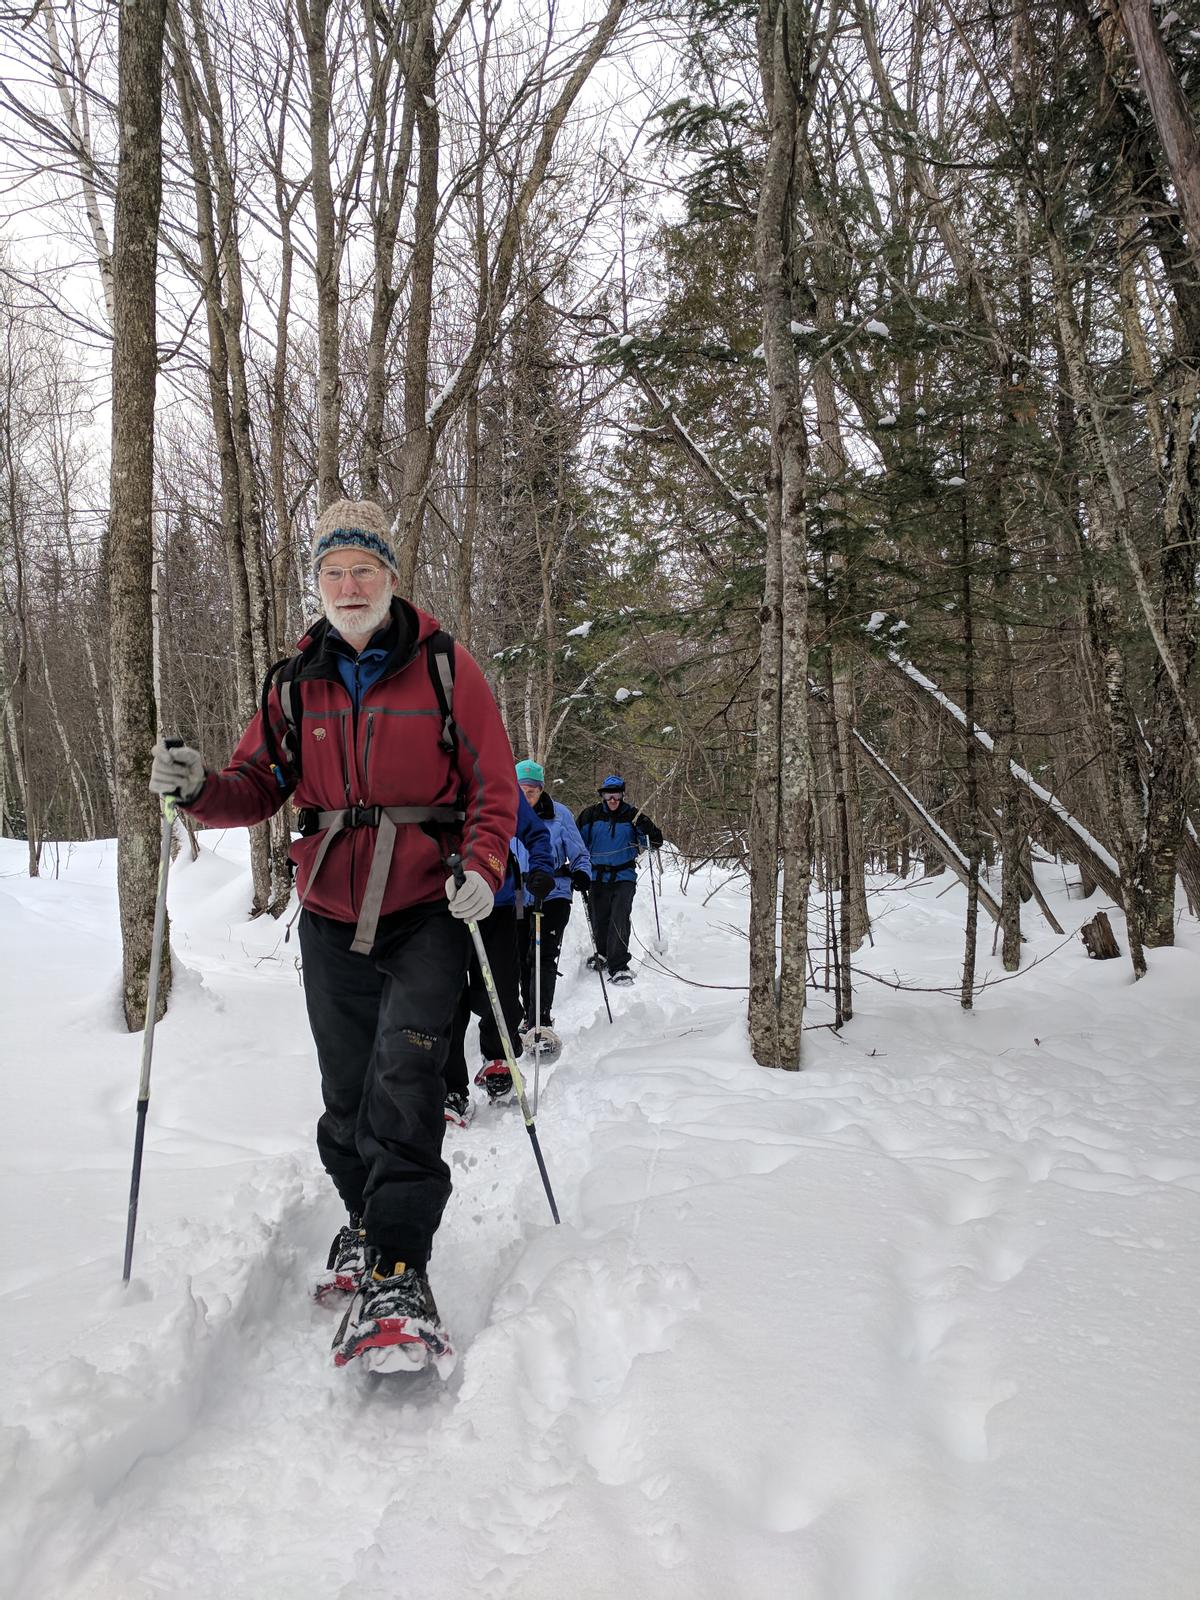 Snowshoeing is a great winter activity! Photo credit: Inland Woods + Trails